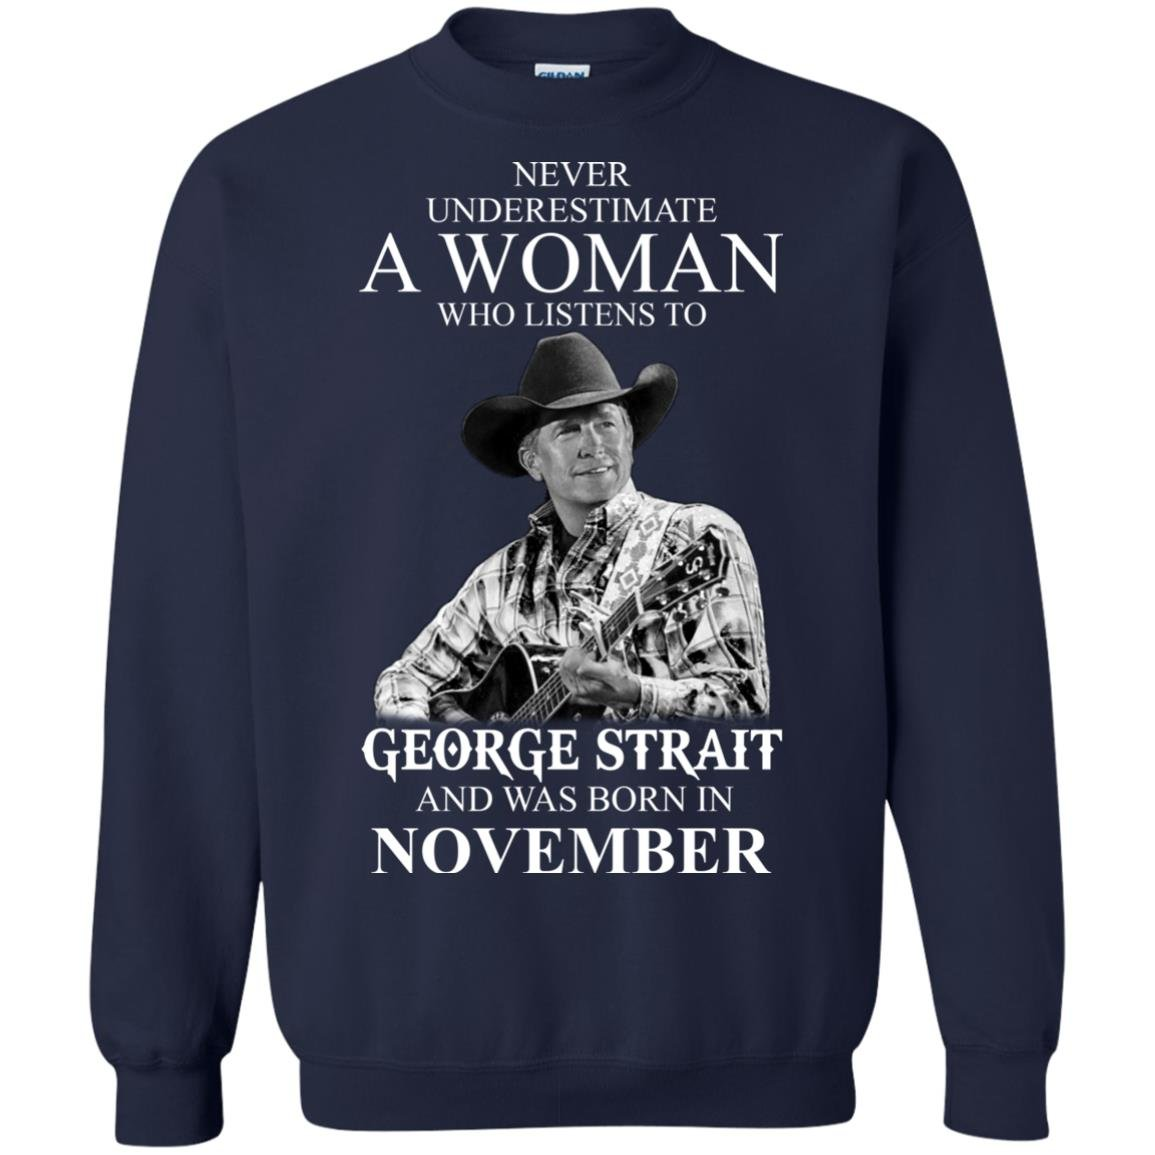 image 357 - Never Underestimate A Woman Who Listens To George Strait And Was Born In November shirt